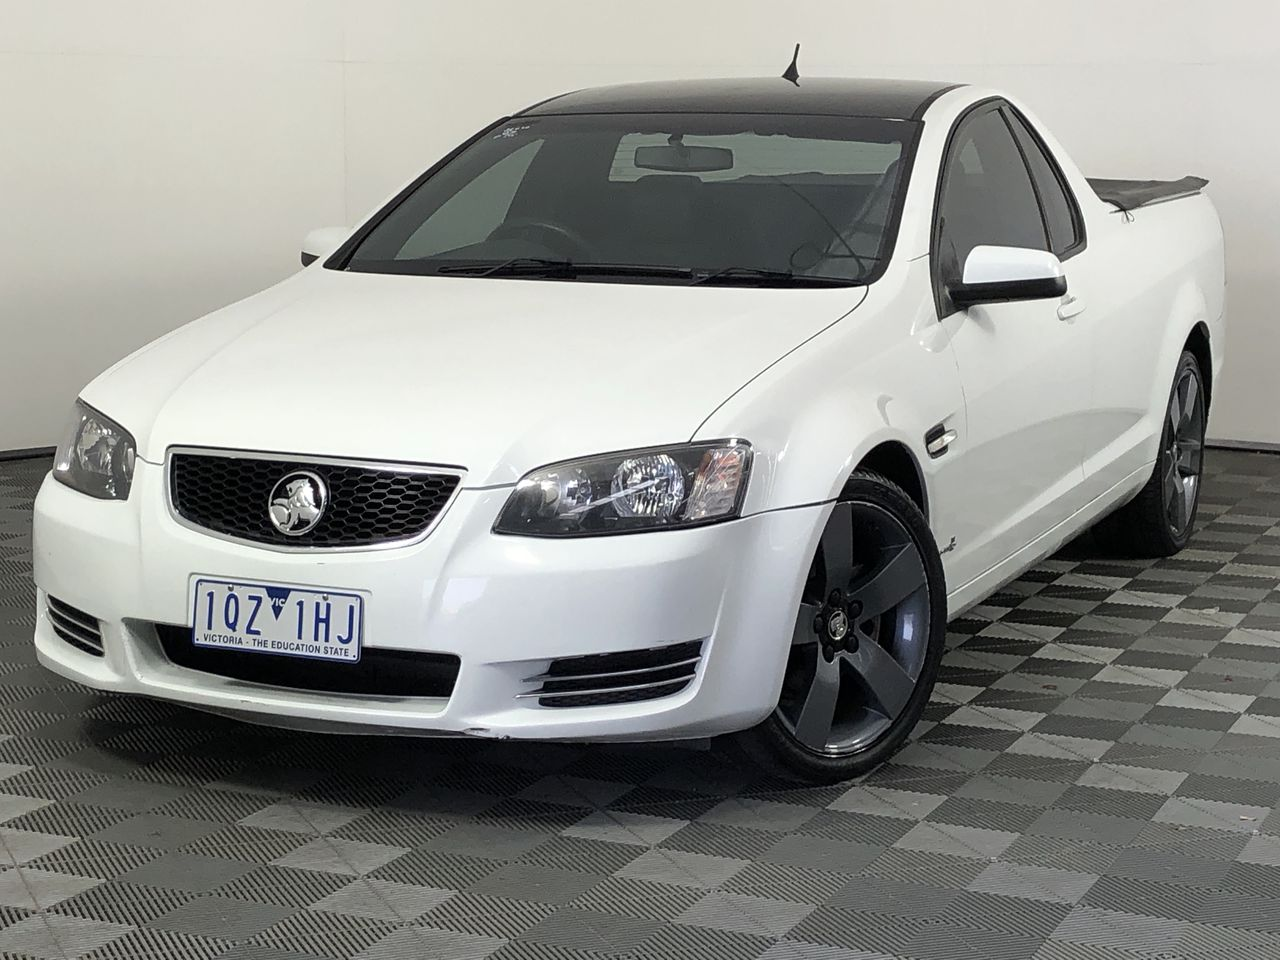 2012 Holden Commodore Omega VE II Automatic Ute